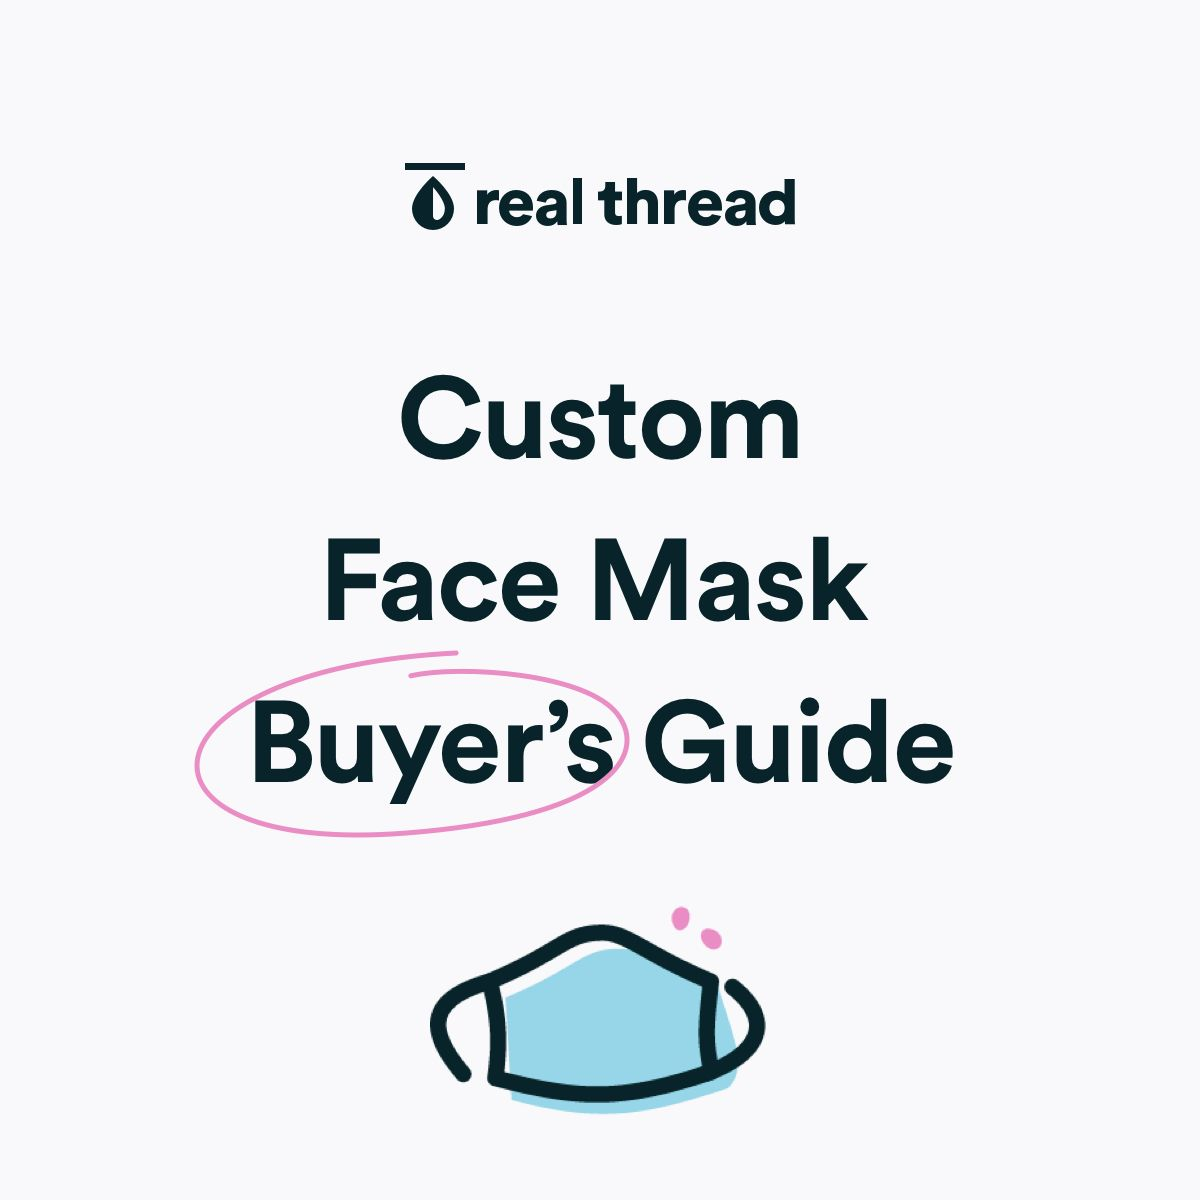 Custom Face Mask Buyer's Guide